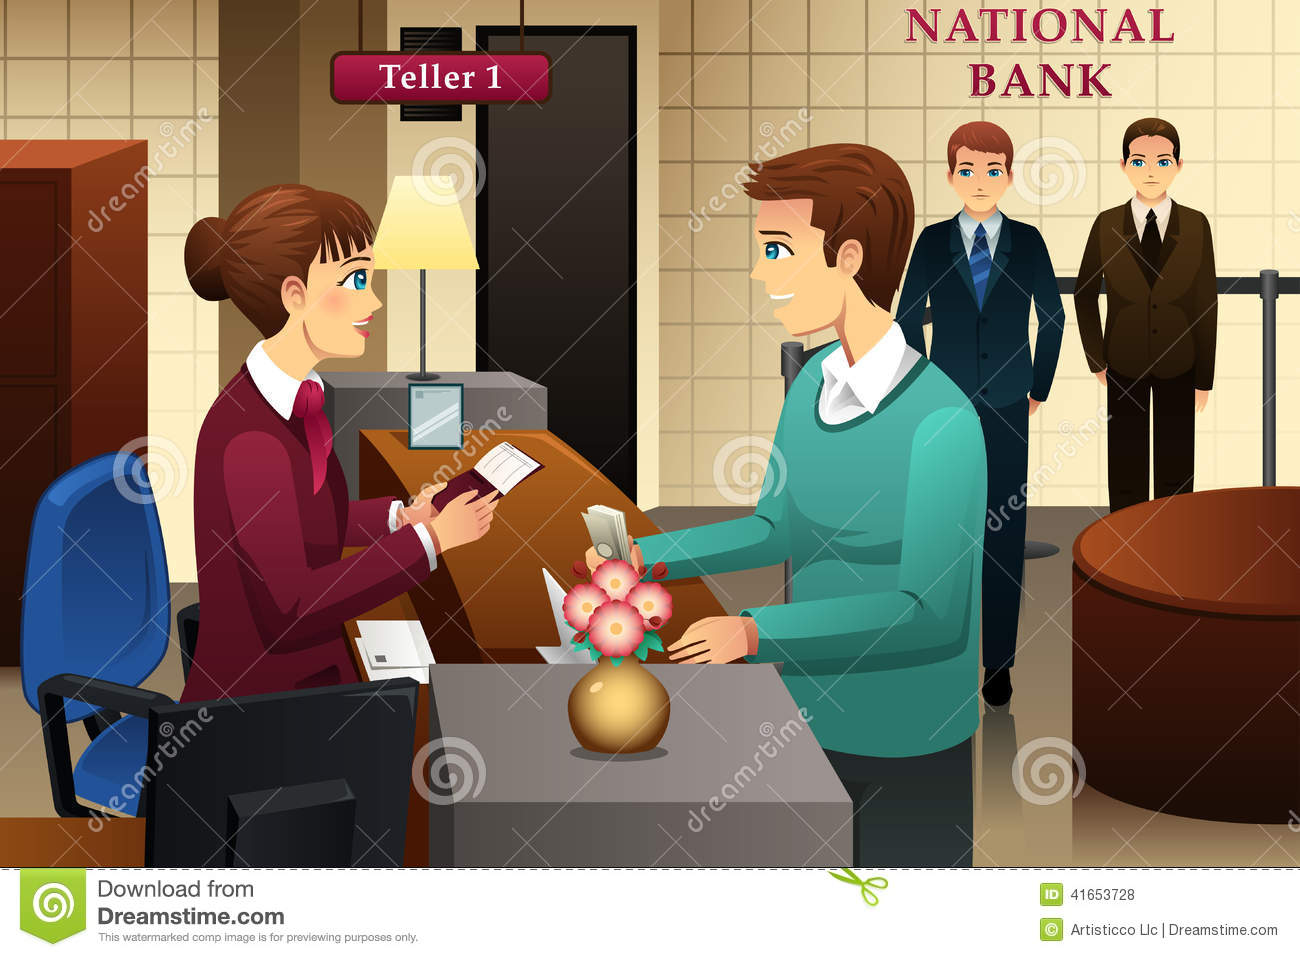 Bank customer clipart image black and white Bank Teller Servicing A Customer In The Bank Stock Vector - Image ... image black and white